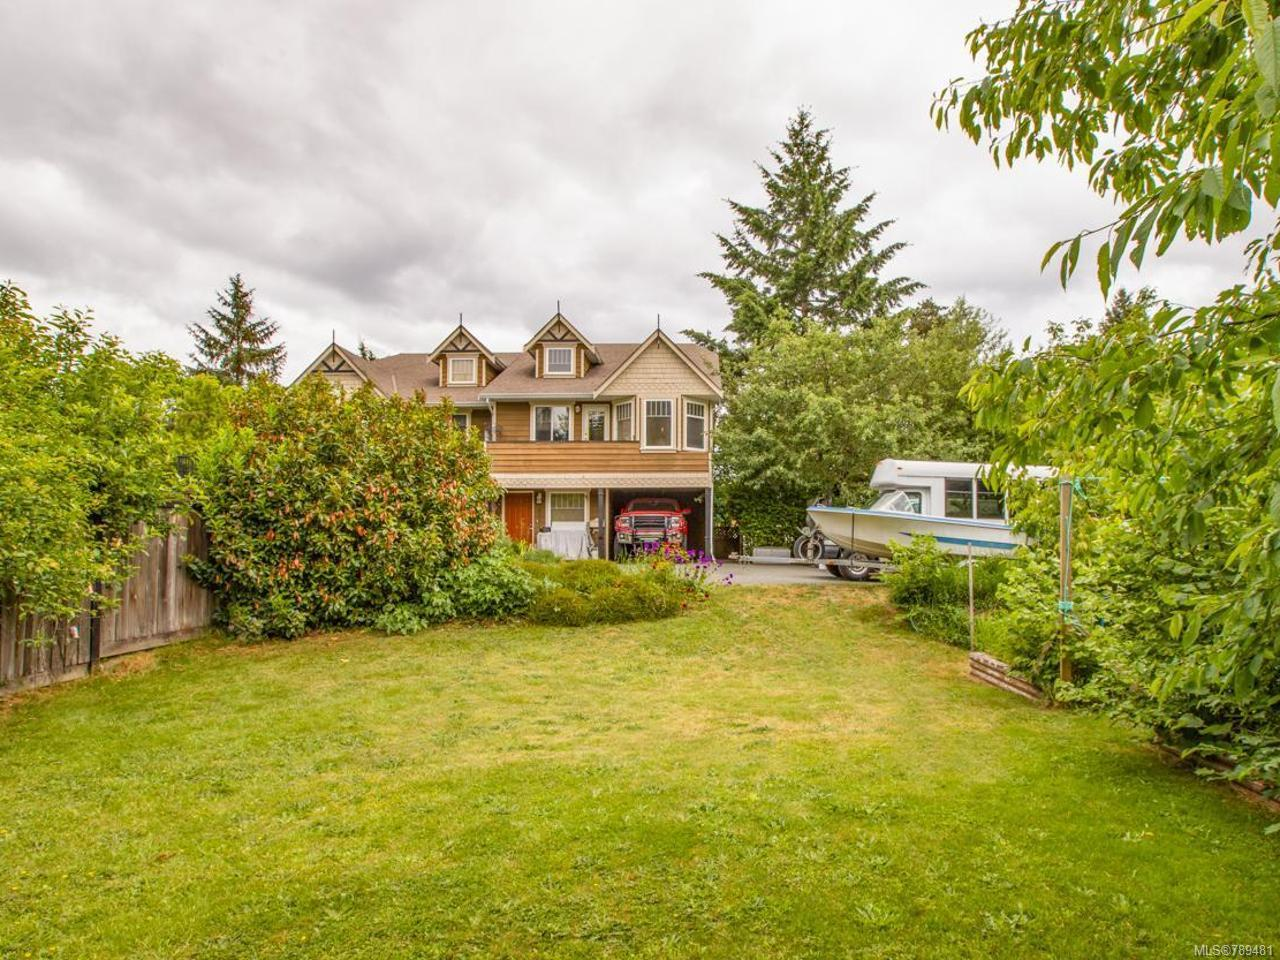 FEATURED LISTING: 3161 Golab Pl DUNCAN